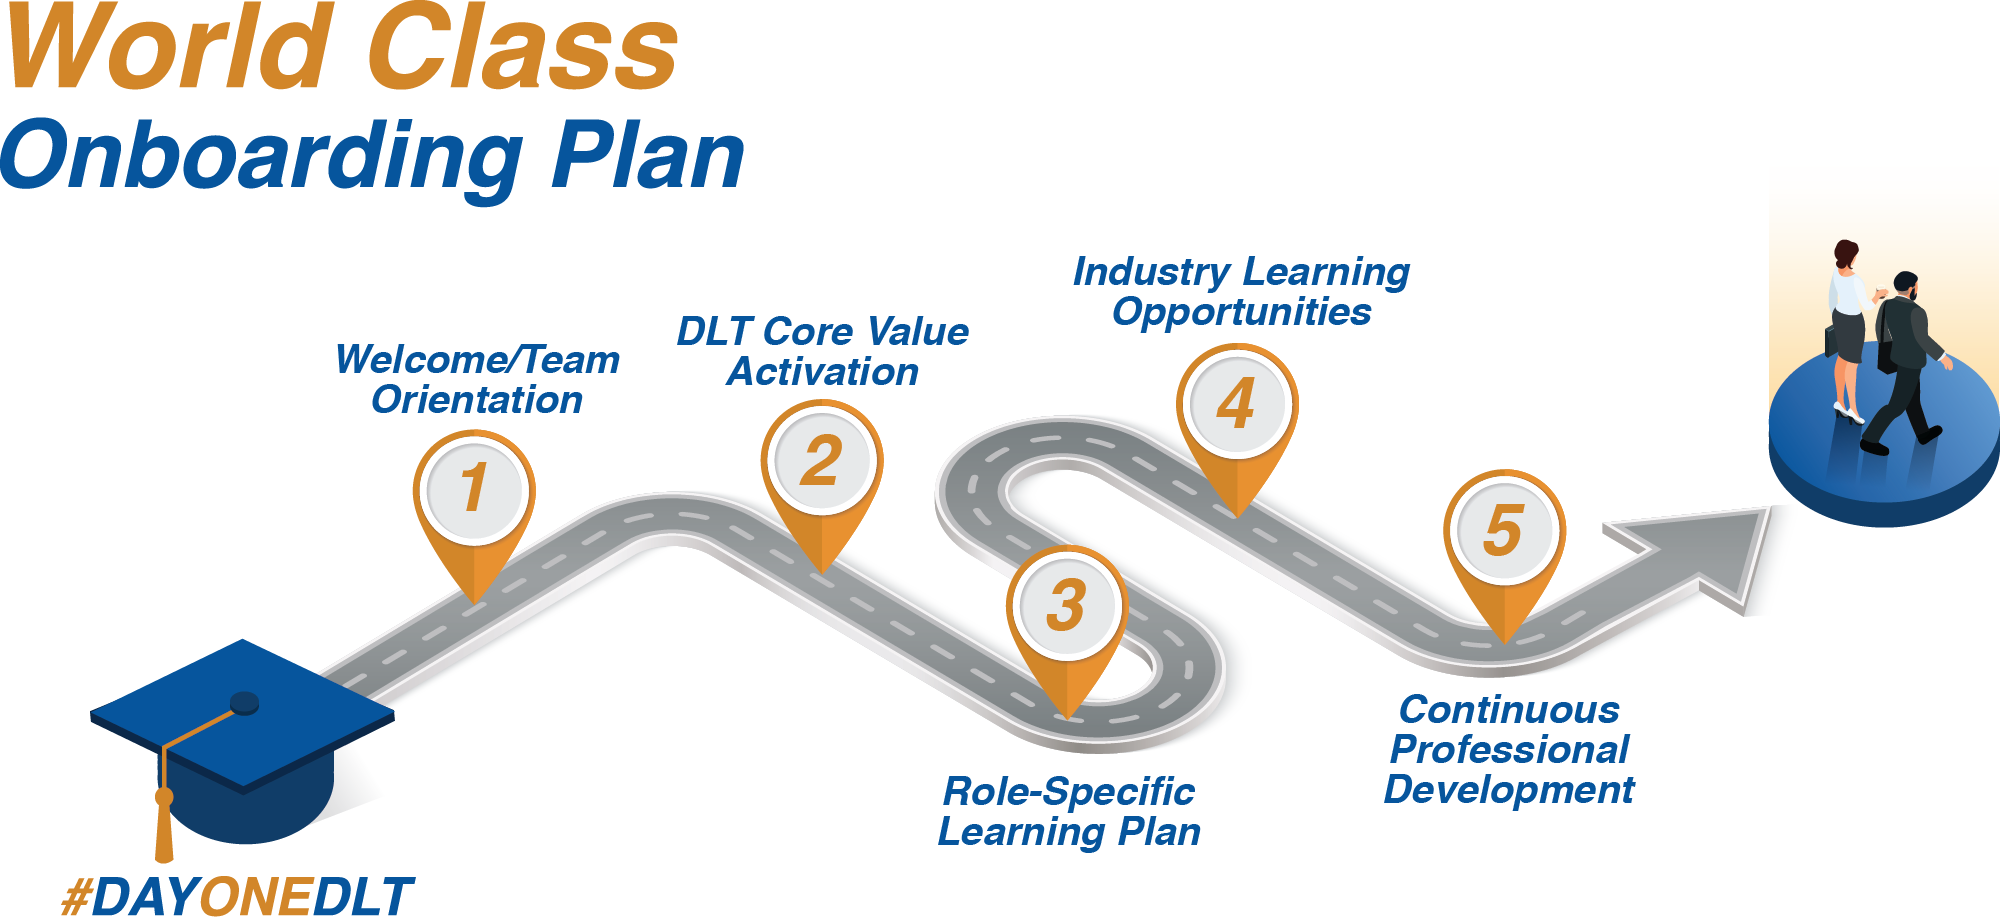 Roadmap of various steps employees take from Day One